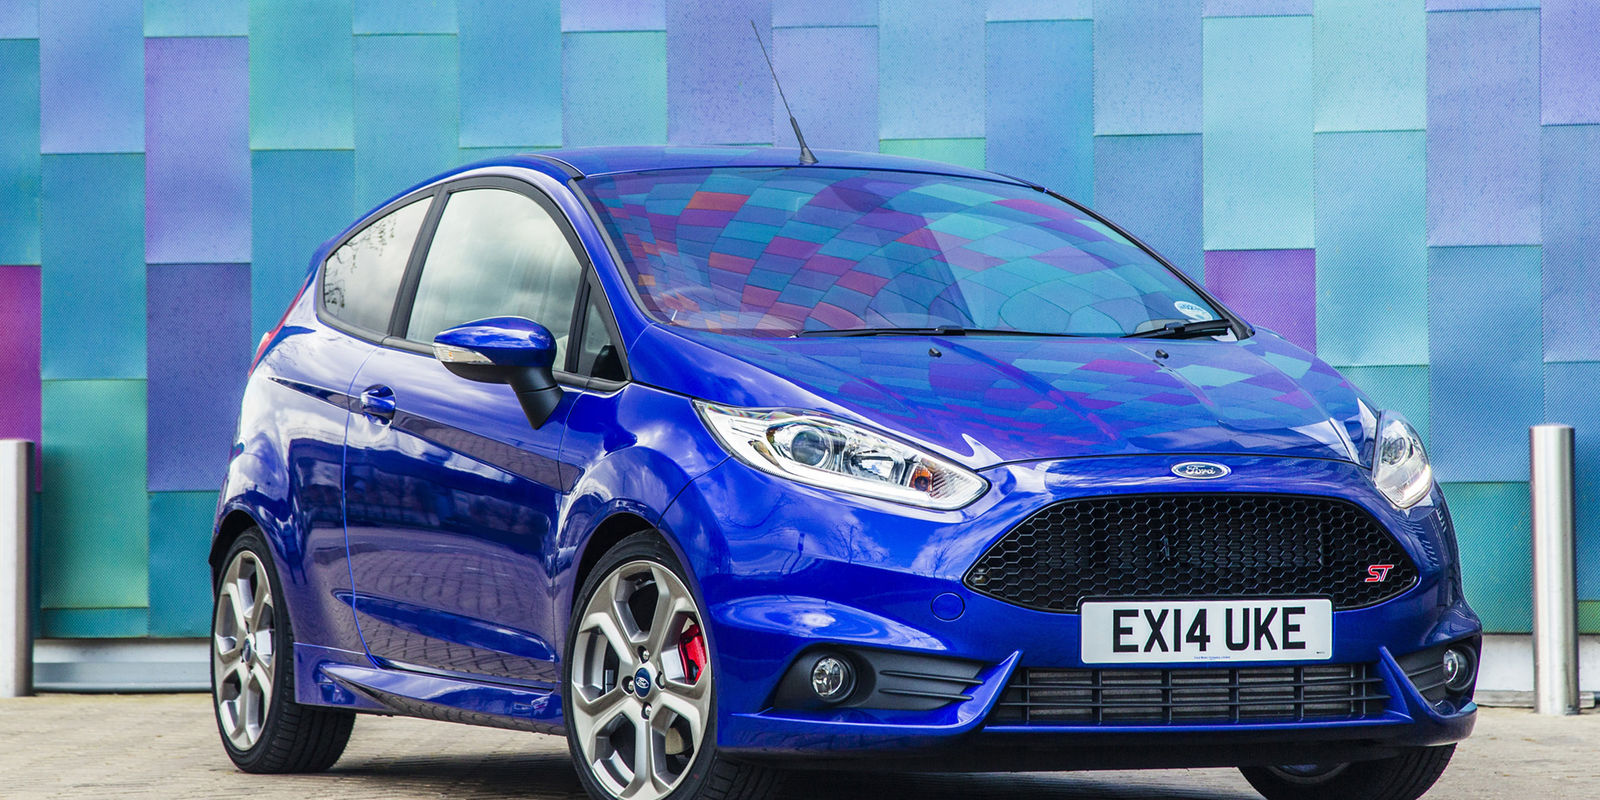 Gt86 Car Wallpaper Ford Fiesta St Review Carwow